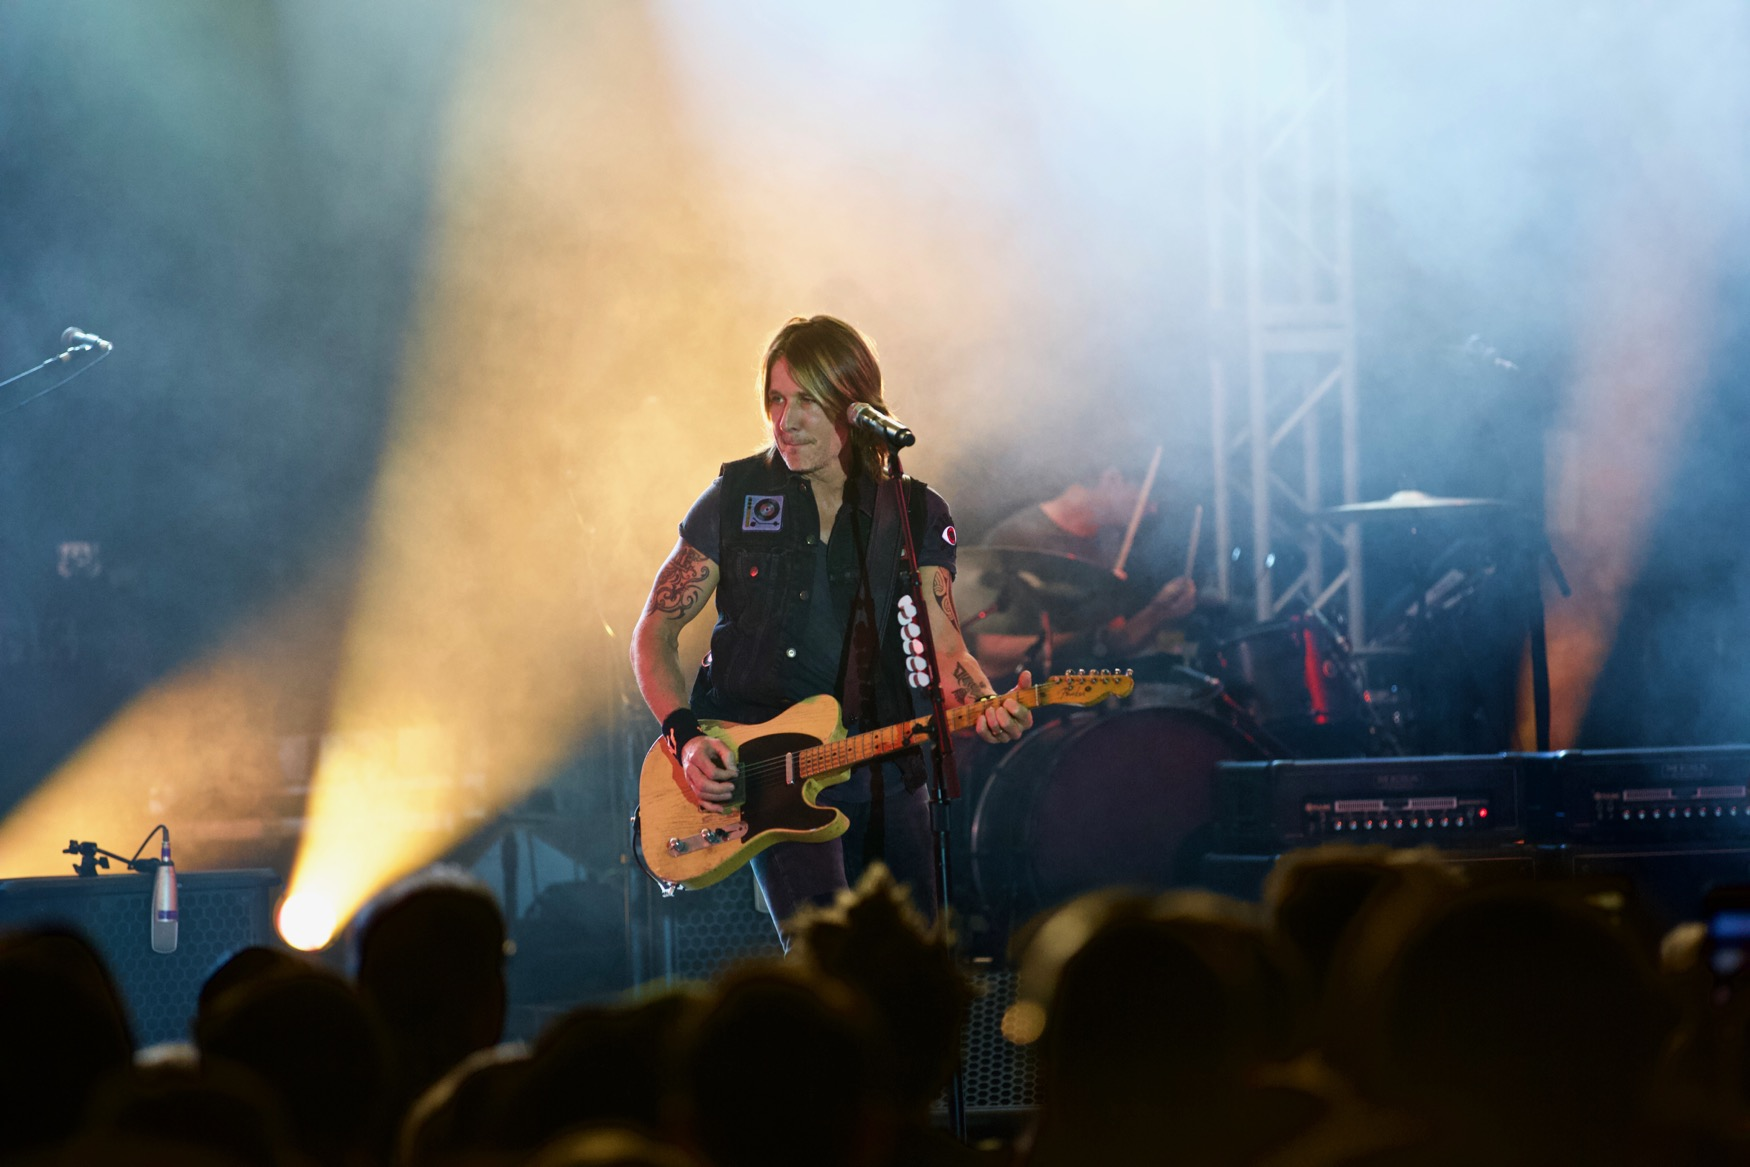 Keith Urban @ Stubb's 3/16/18. SXSW 2018. Photo by Derrick K. Lee, Esq. (@Methodman13) for www.BlurredCulture.com.